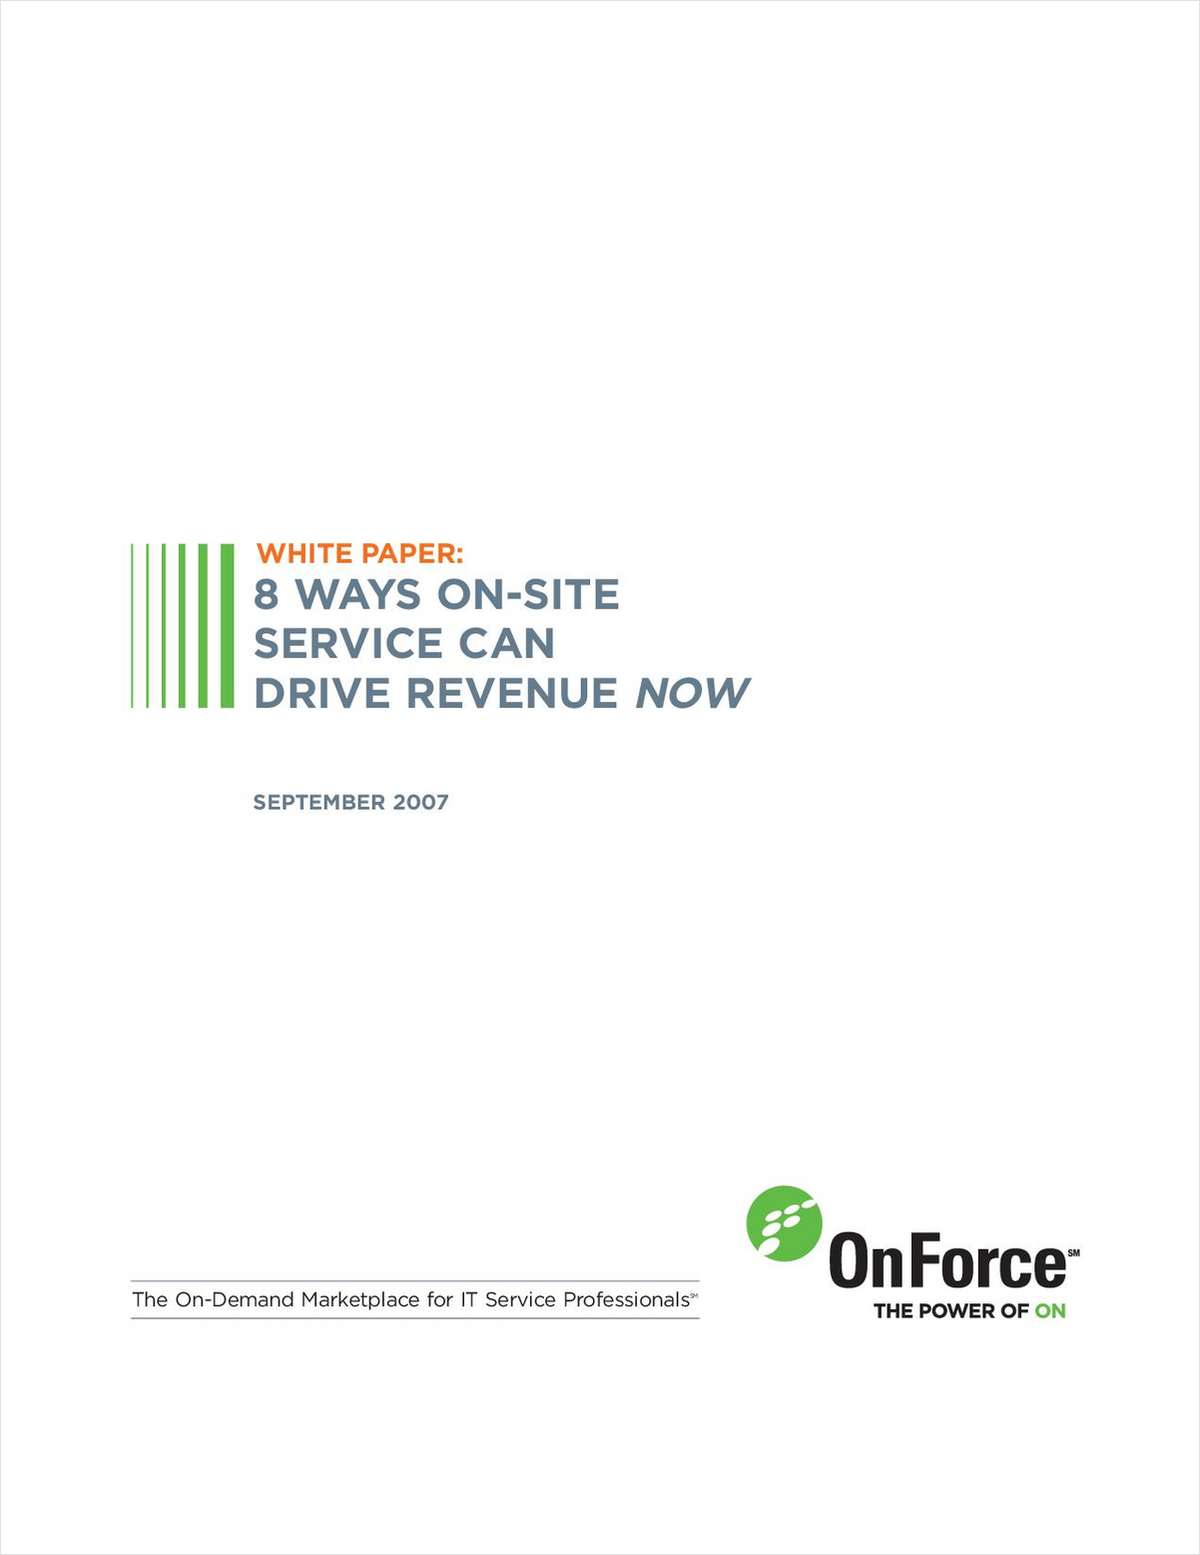 8 Ways On-Site Service Can Drive IT Solution Provider Revenue